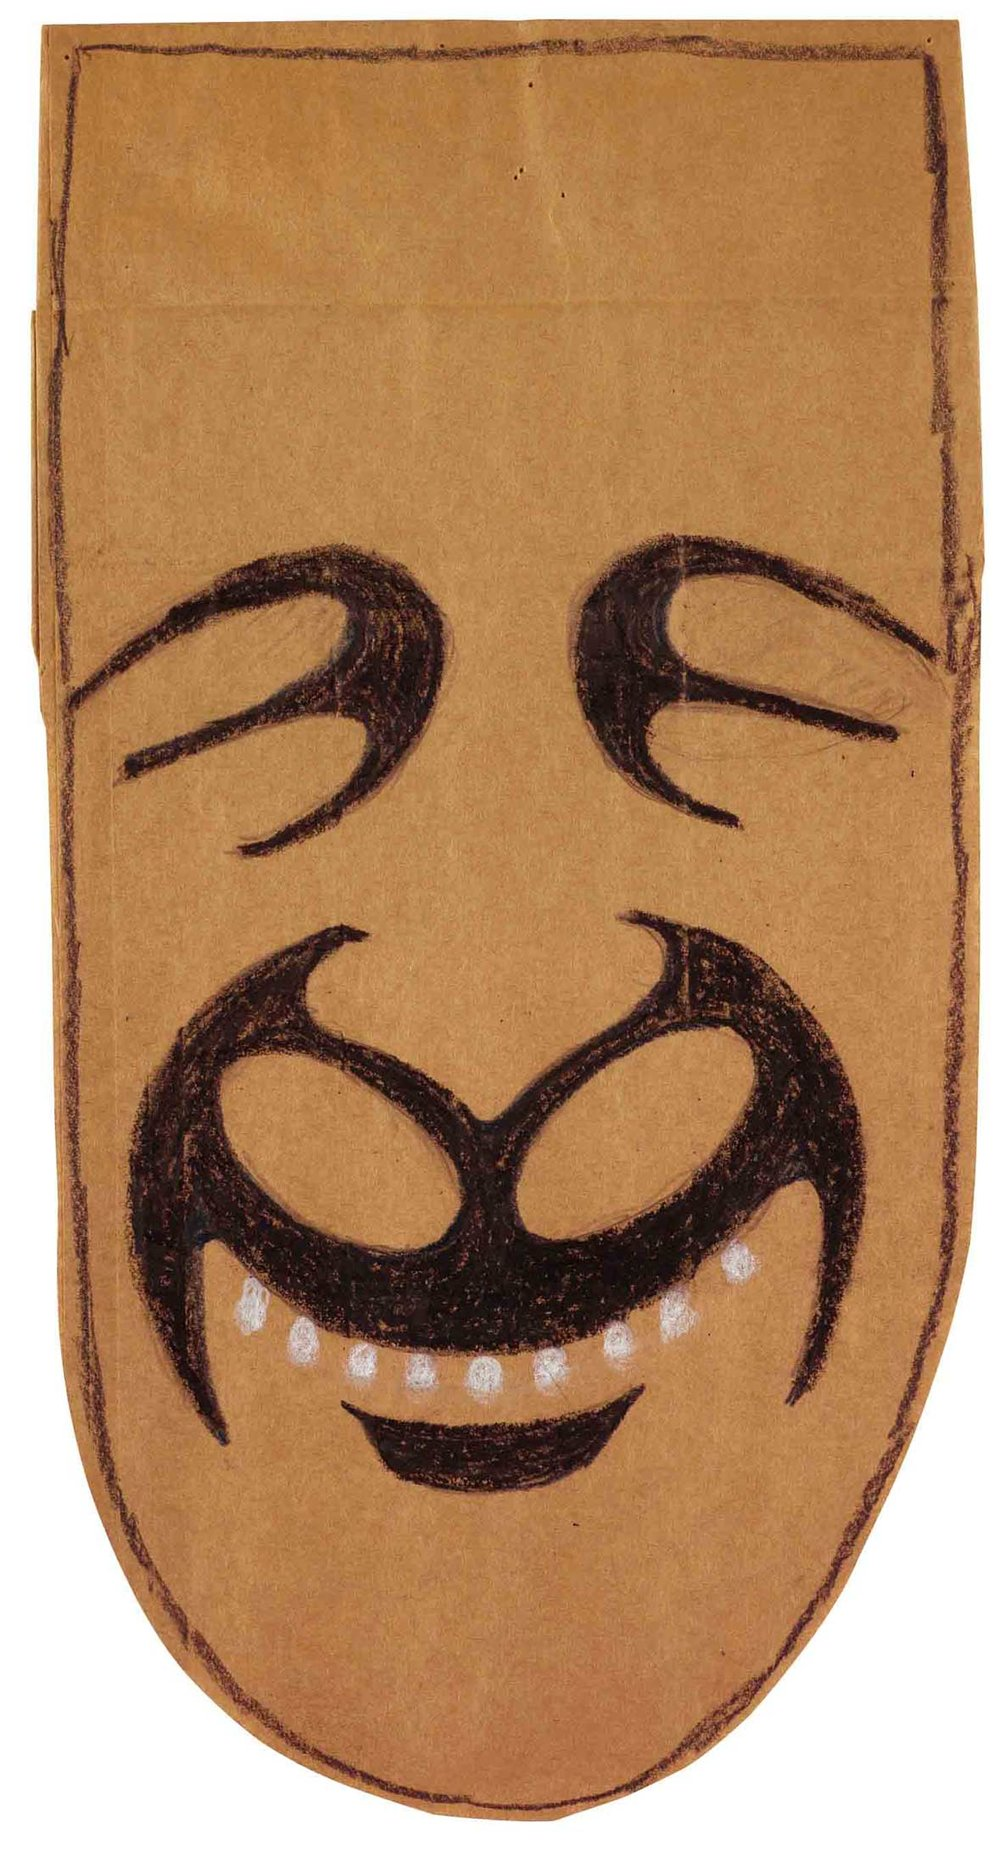 Saul Steinberg,  Untitled,  ca. 1957, Crayon and pencil on cut brown paper bag, 14 5/8h x 7 3/4w in